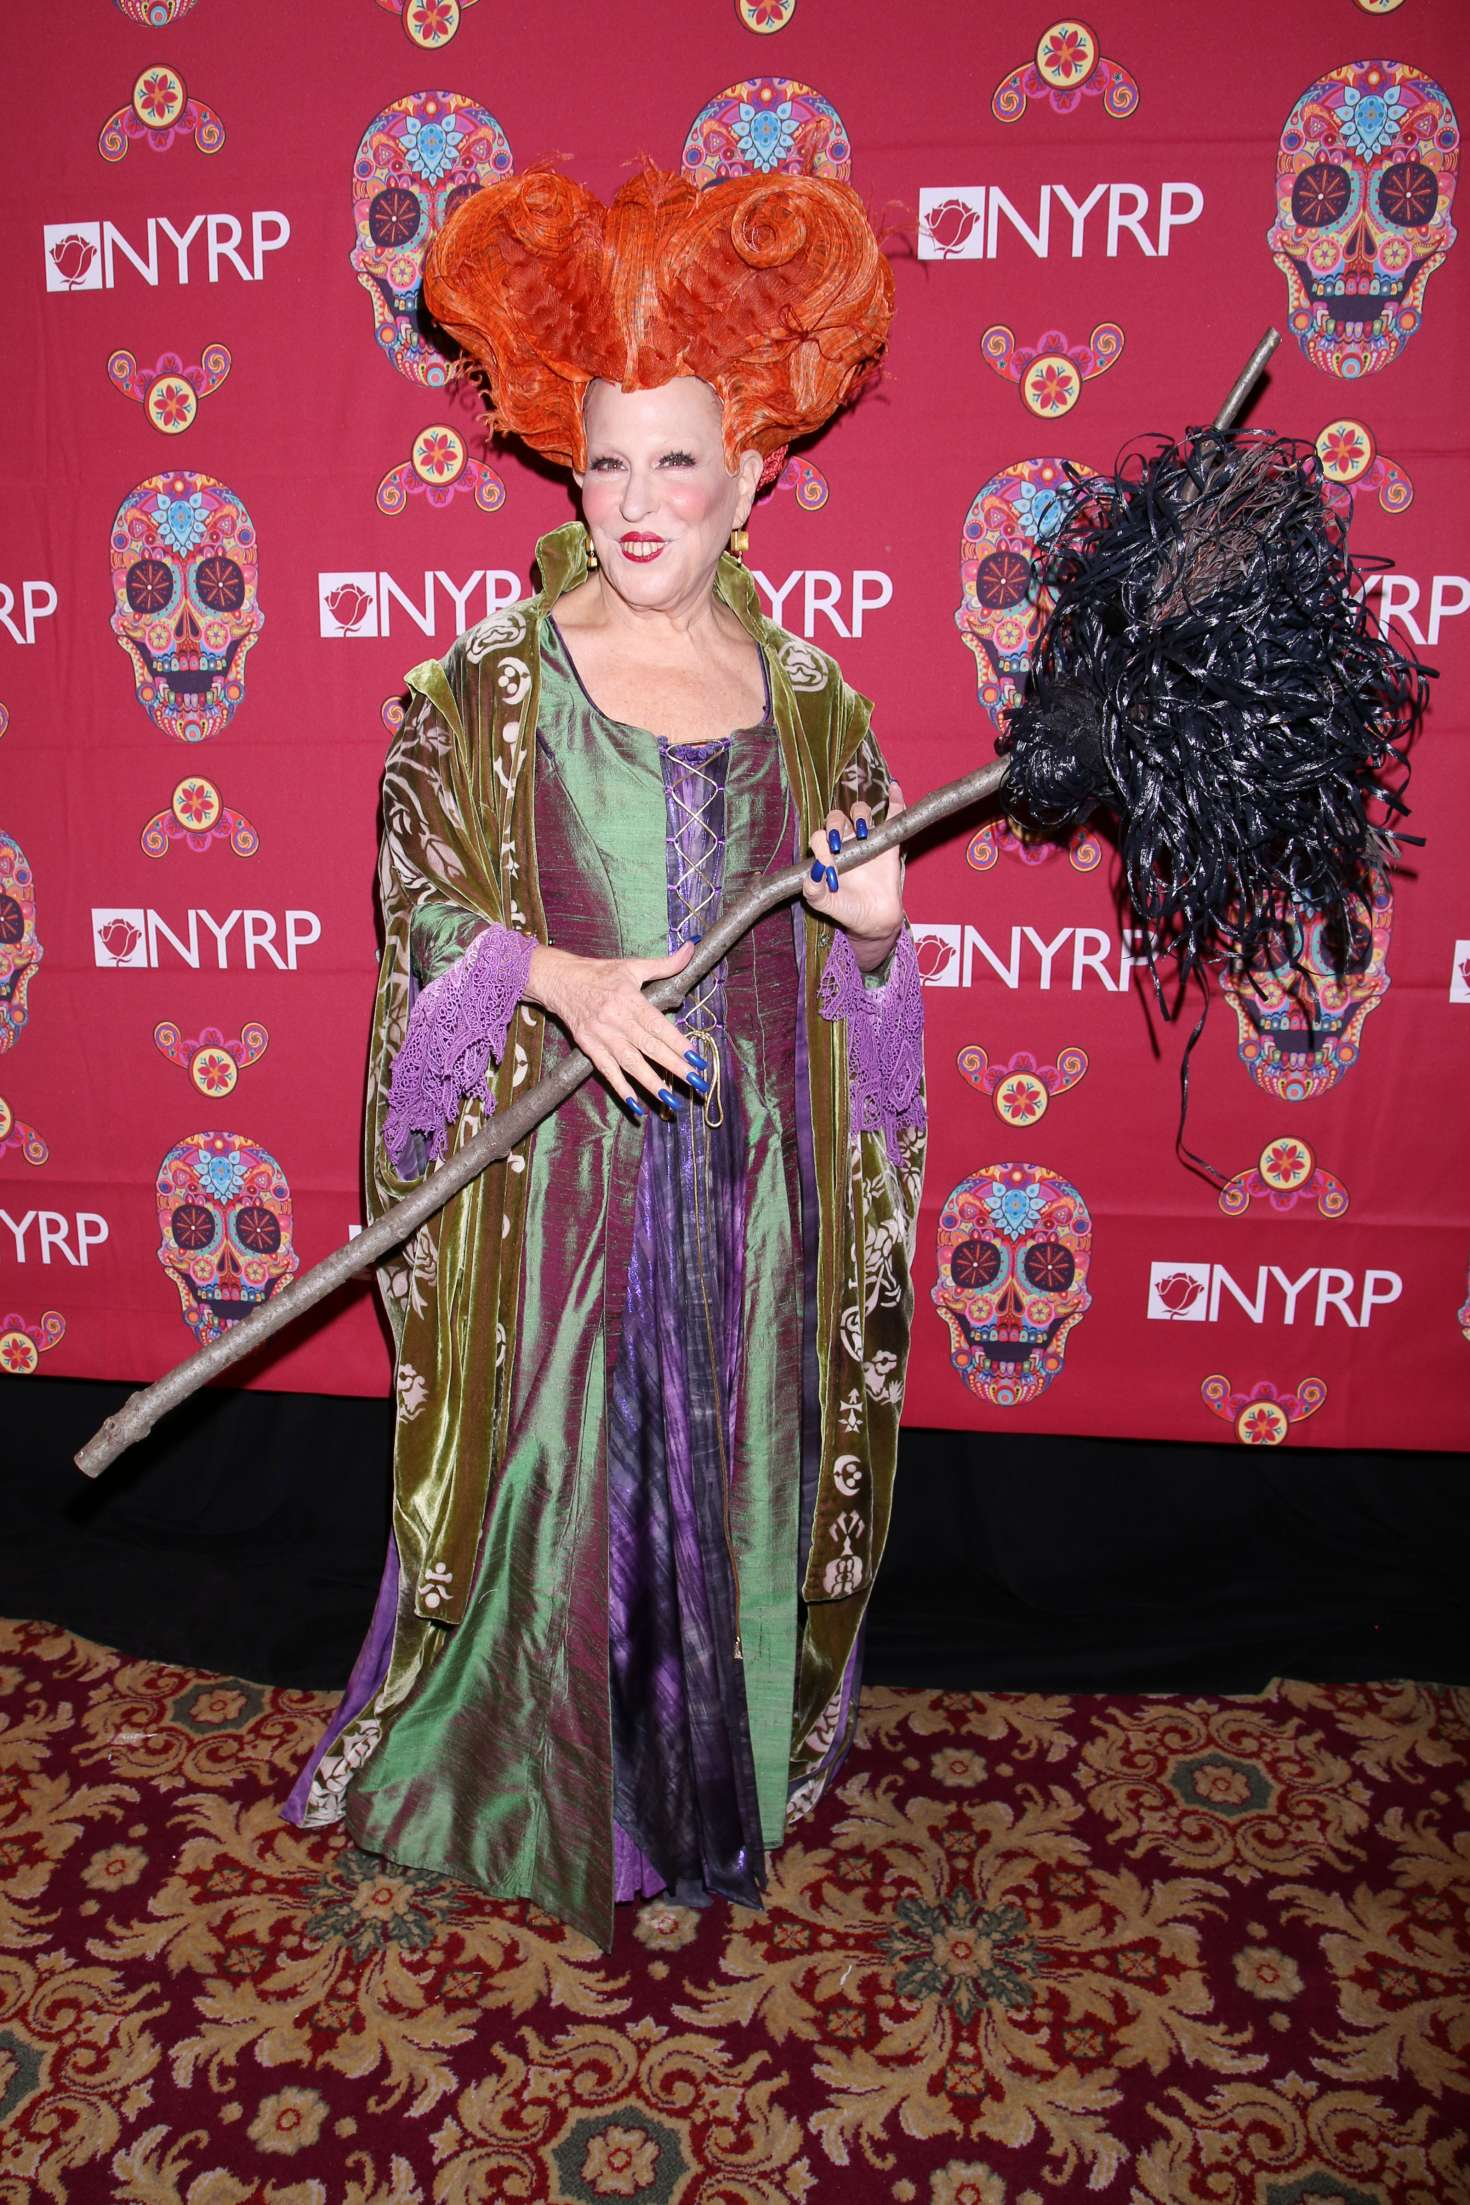 Bette Midler 2016 : Bette Midler: 2016 Halloween Bash to benefit the NYRP -14